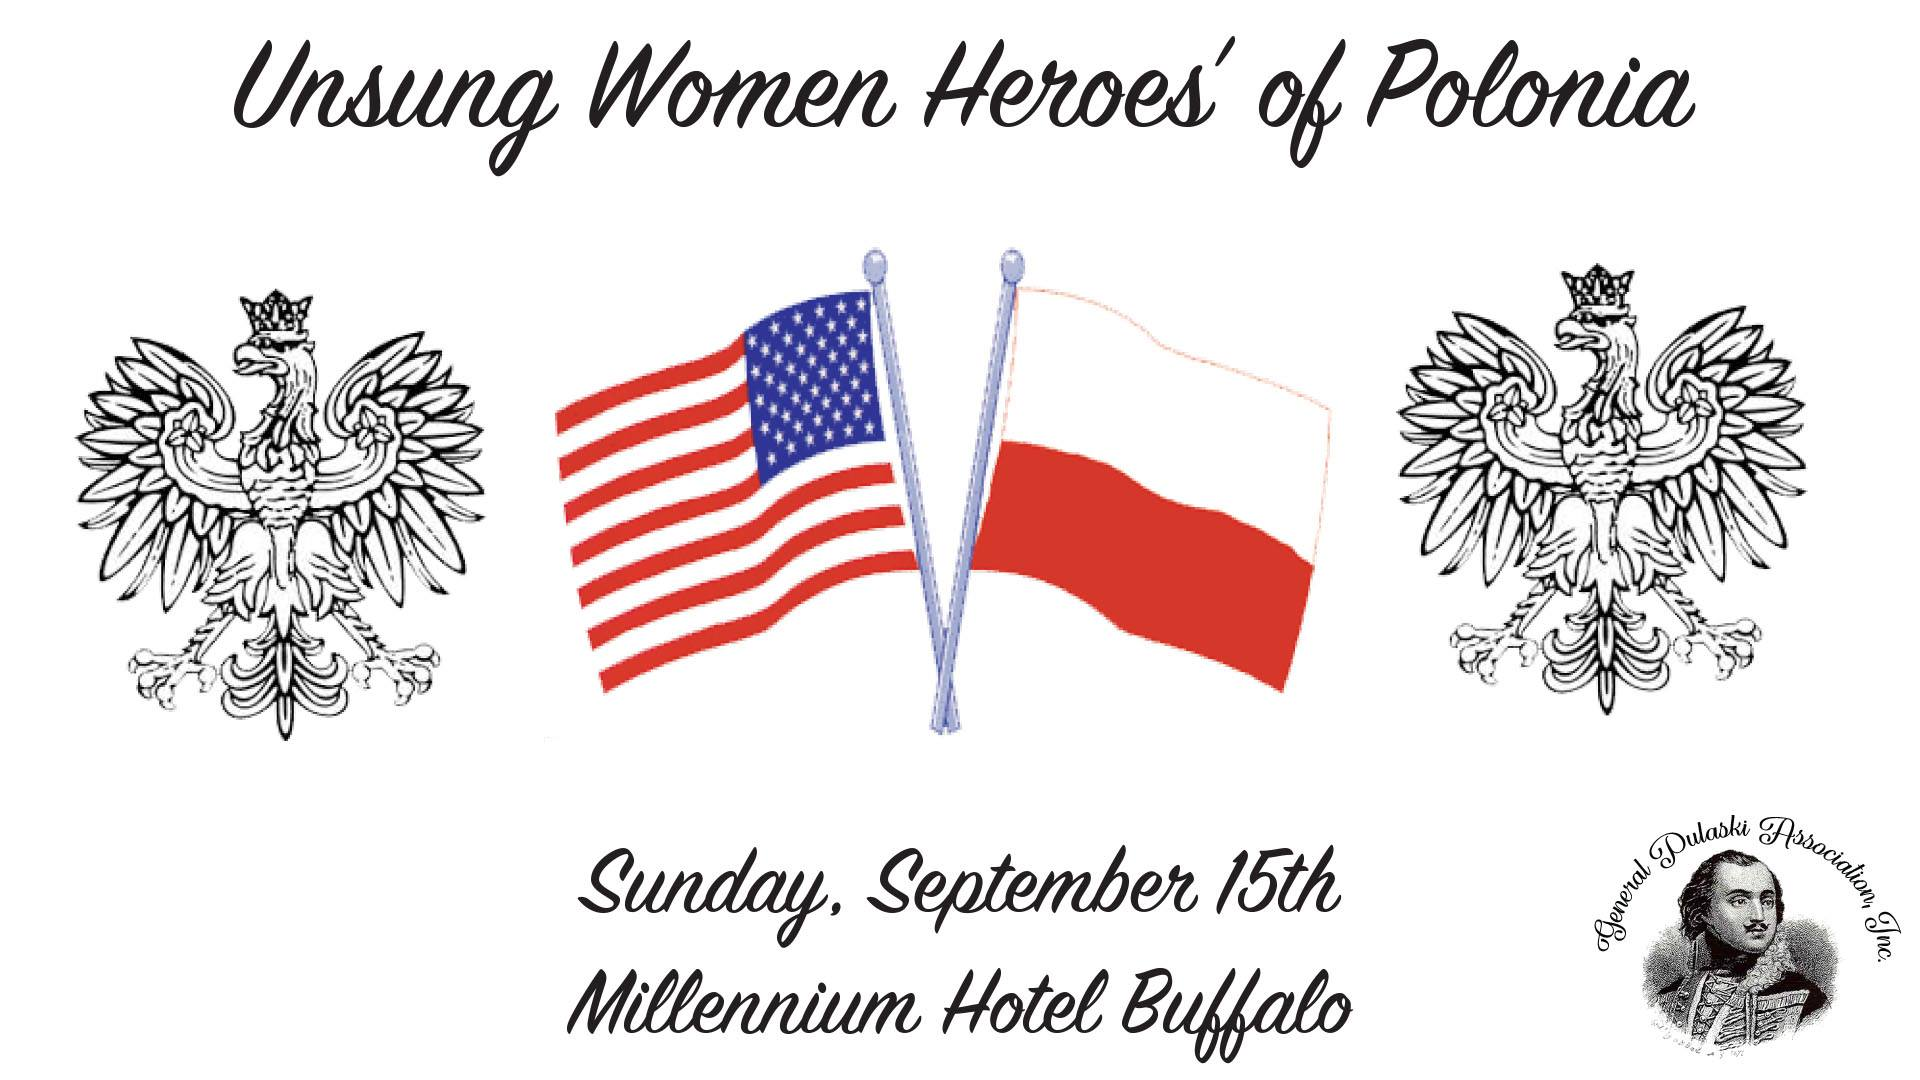 Polish Americans of Buffalo: Unsung Women Heroes' of Polonia Awards Banquet in Buffalo